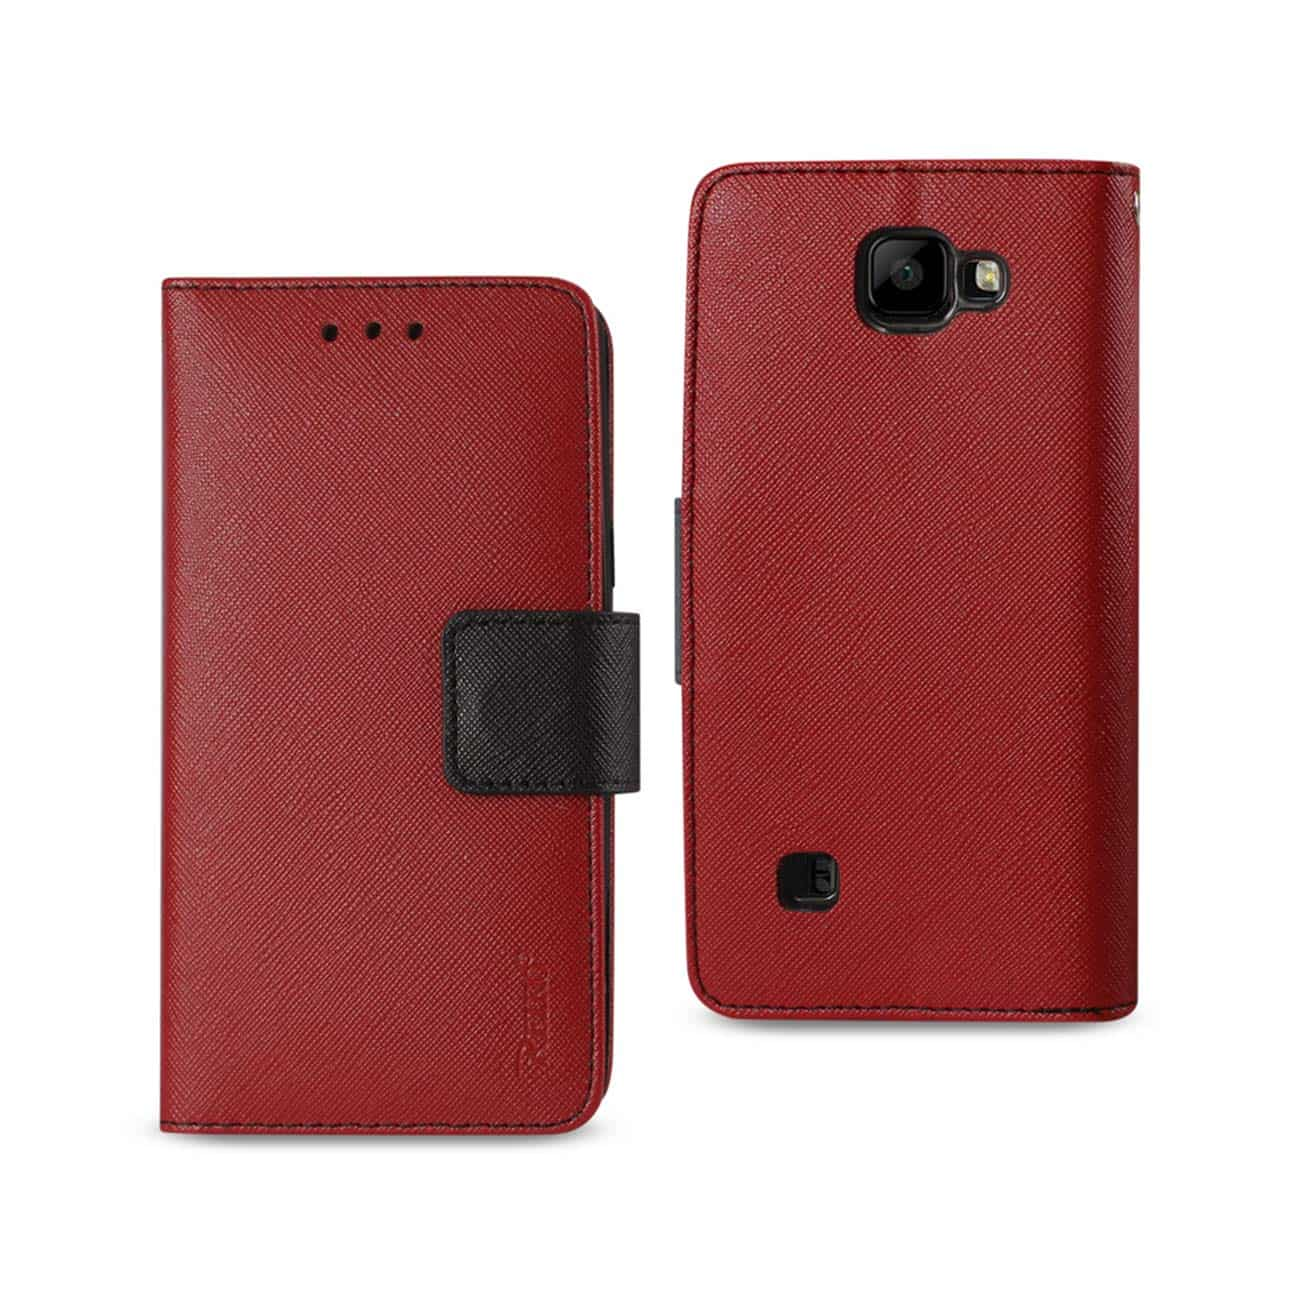 LG K3 3-IN-1 WALLET CASE IN RED